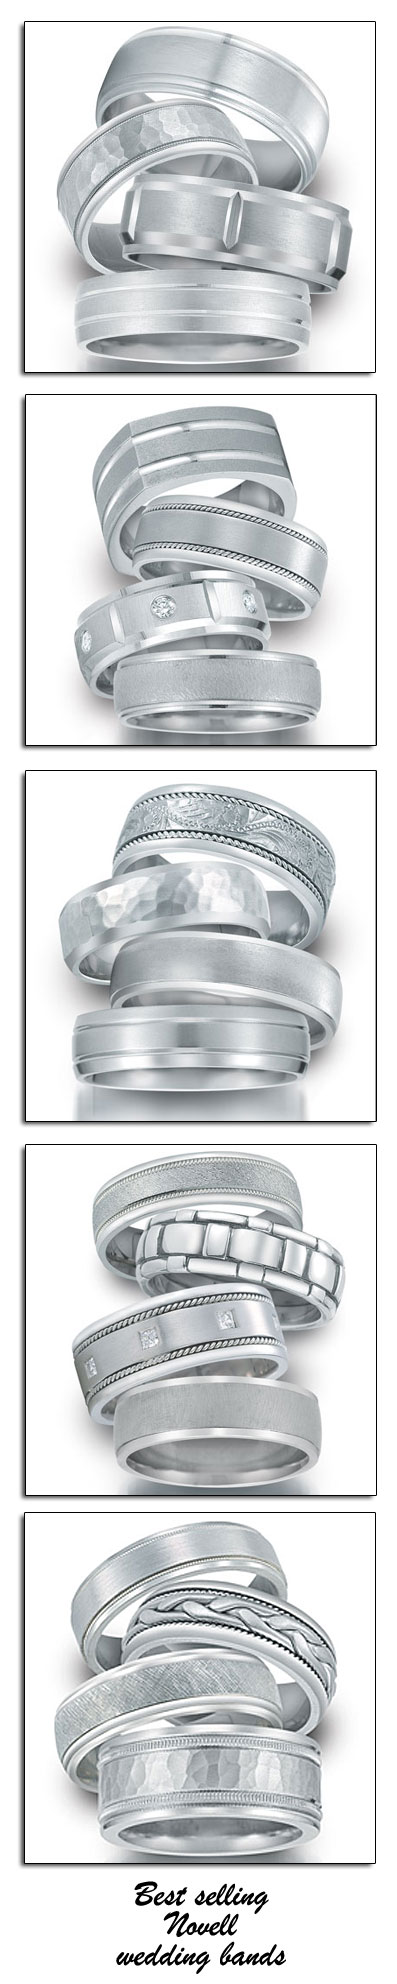 Novell highlights their most popular wedding band styles to retailers at the 2010 JCK Show in Las Vegas.